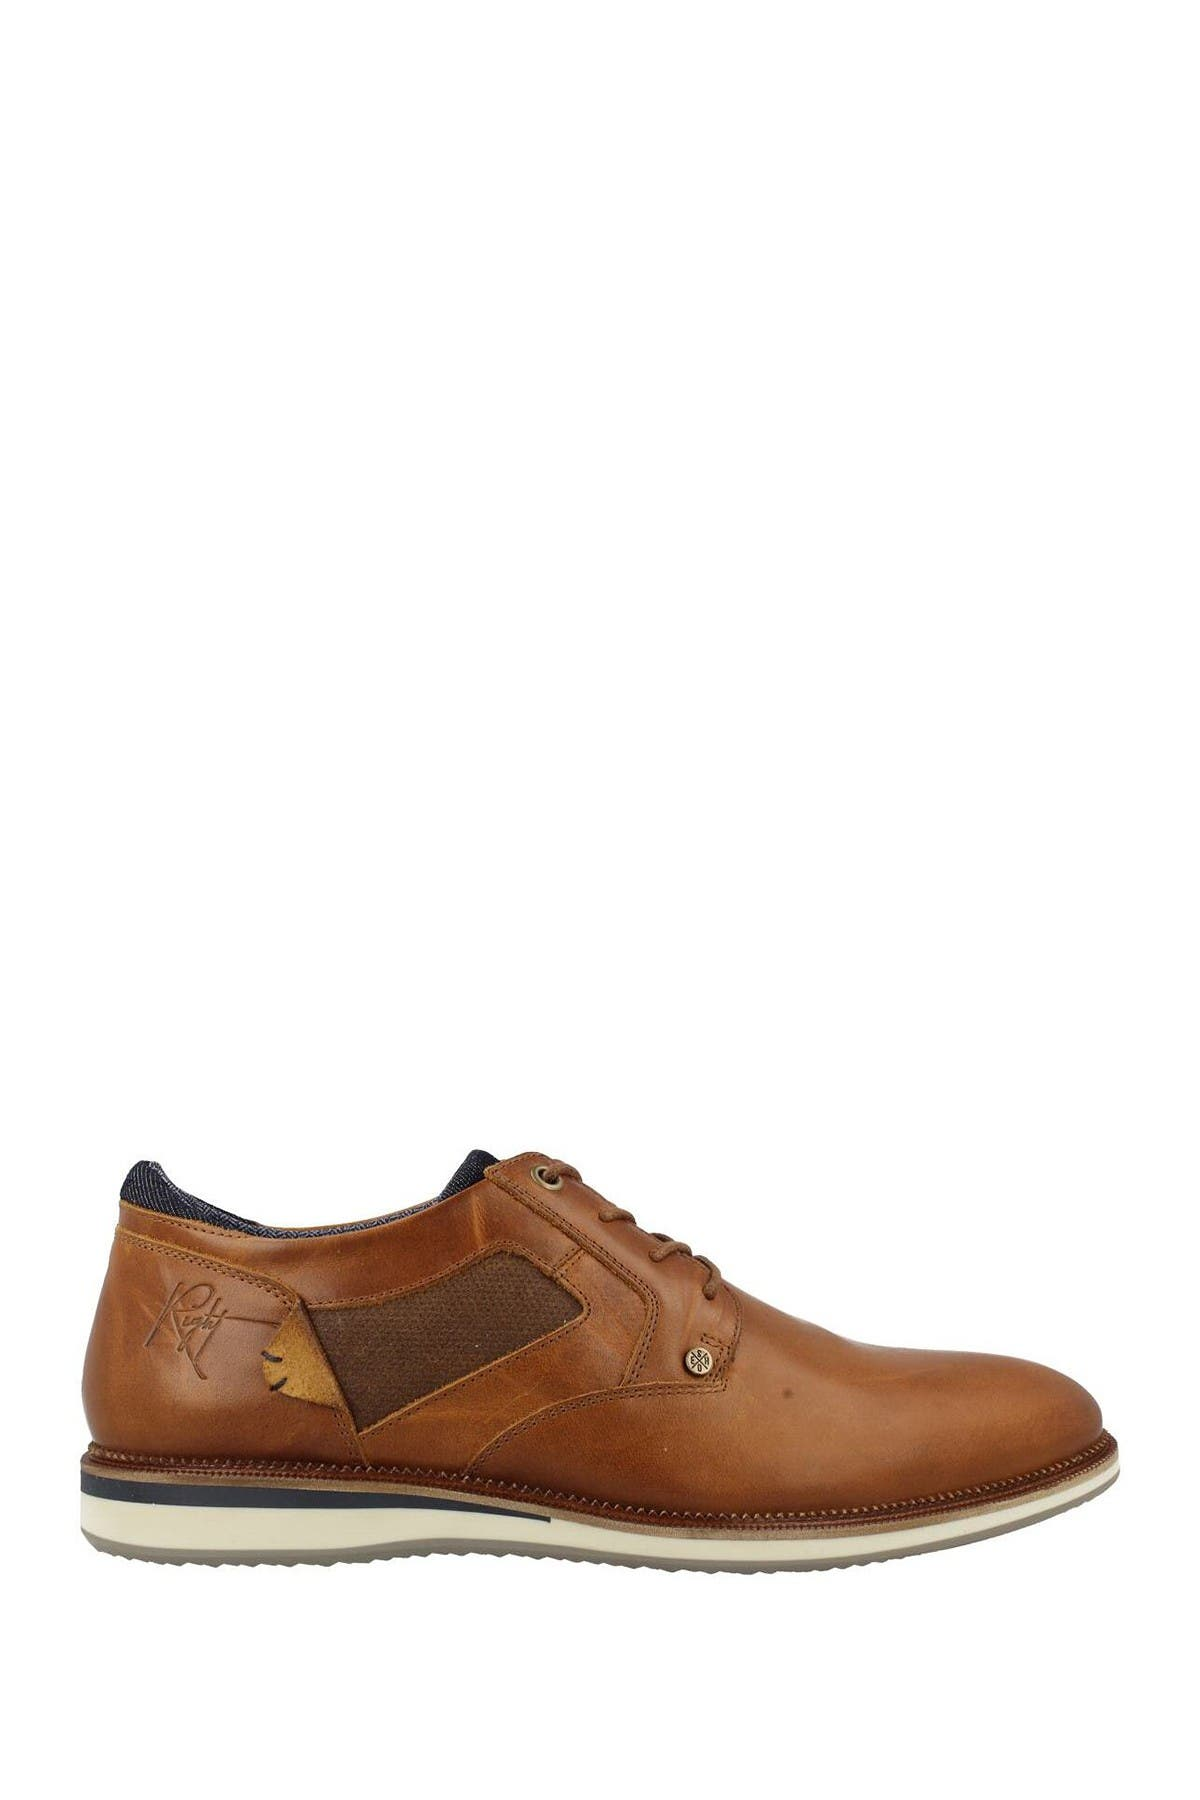 Image of Bullboxer Leather Plain Toe Derby